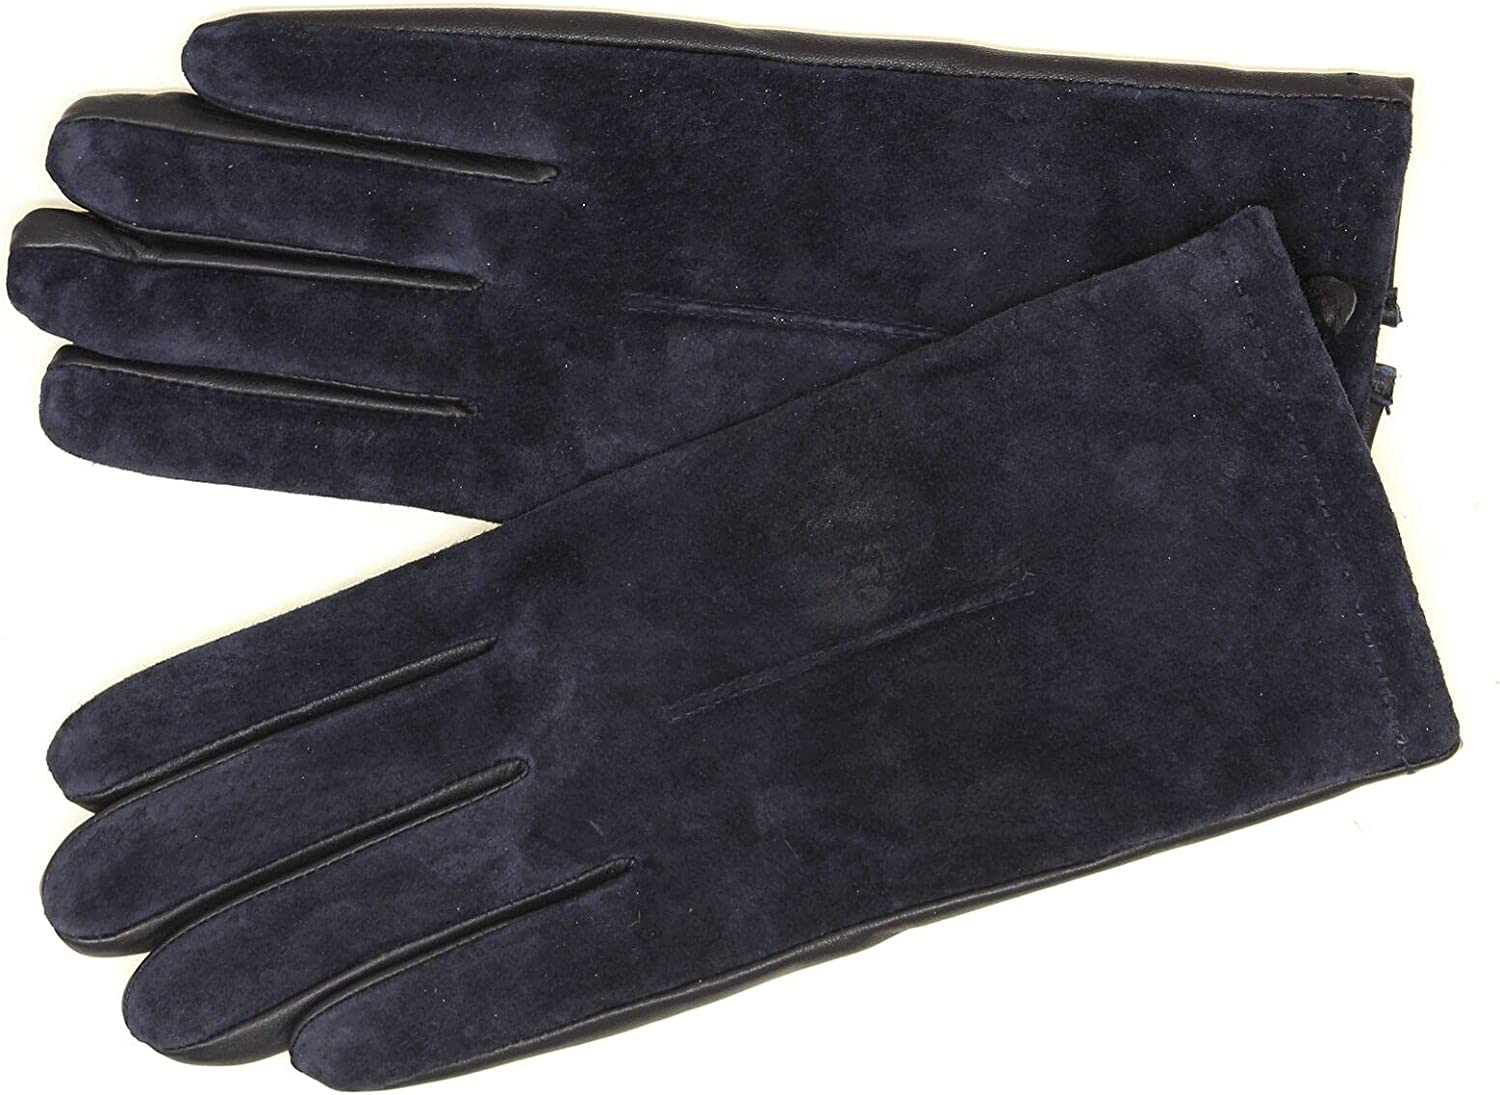 A New Day Women's Suede Back Tech Touch Genuine Leather Gloves